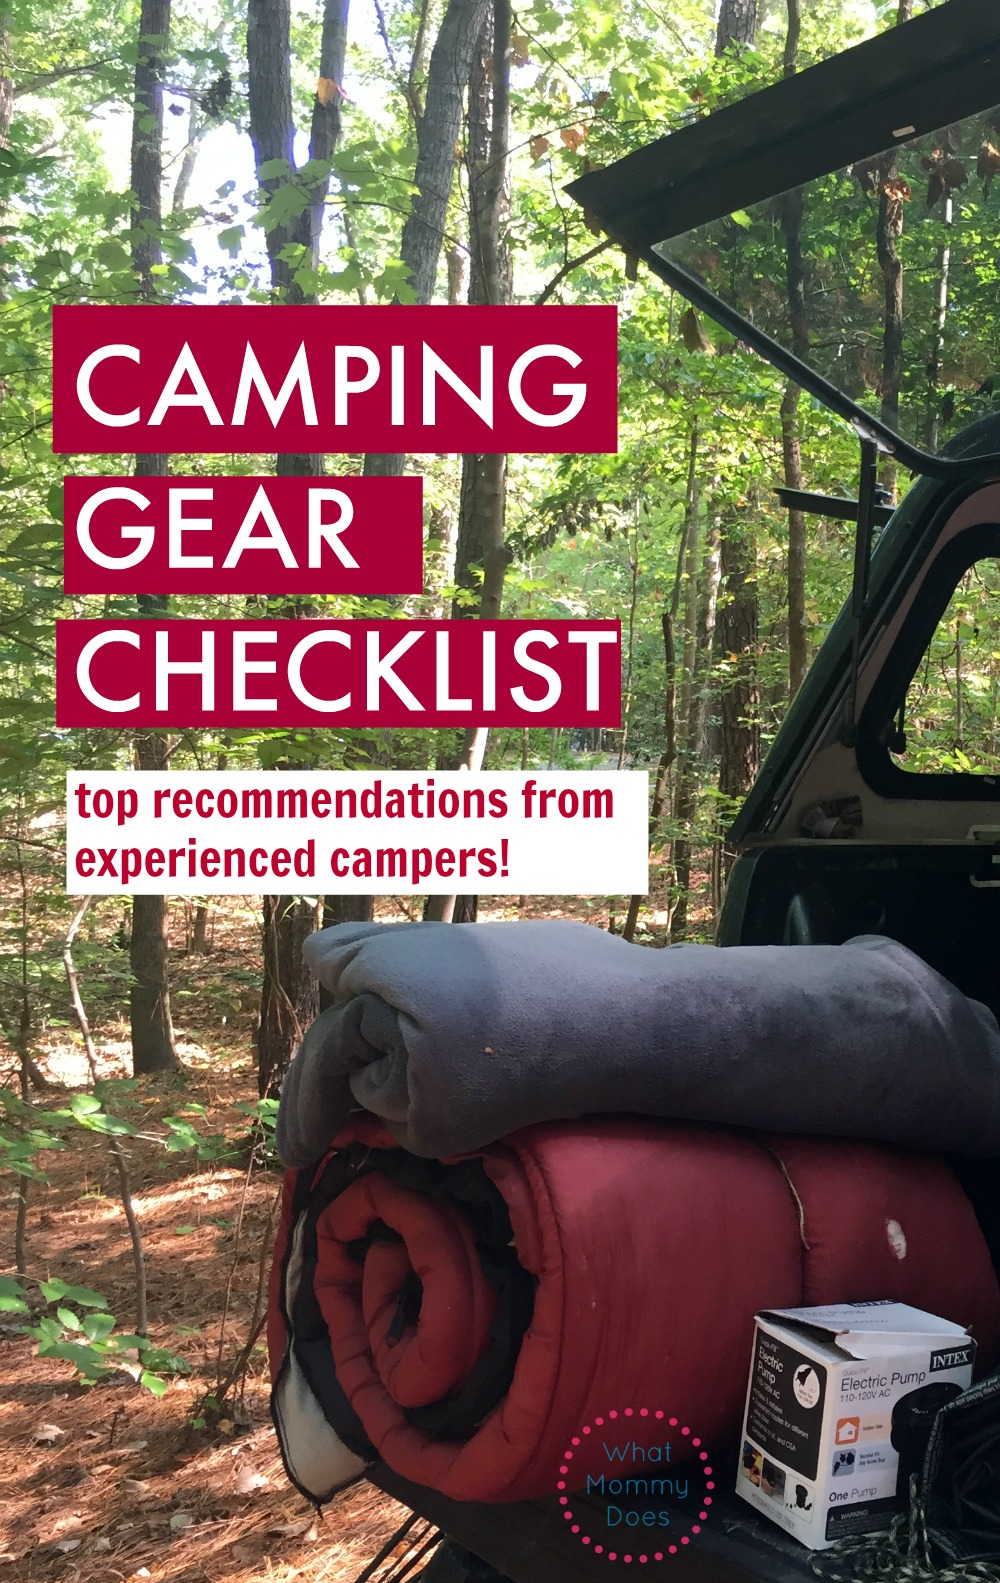 If you're going on a family camping trip anytime soon, make sure you READ THIS FIRST! I wish someone had told me to bring these must-have things the first time I went camping. It's a checklist of the smack-you-on-the-forehead things you need to know to pack!! | family camping ideas, tent camping gear checklist.